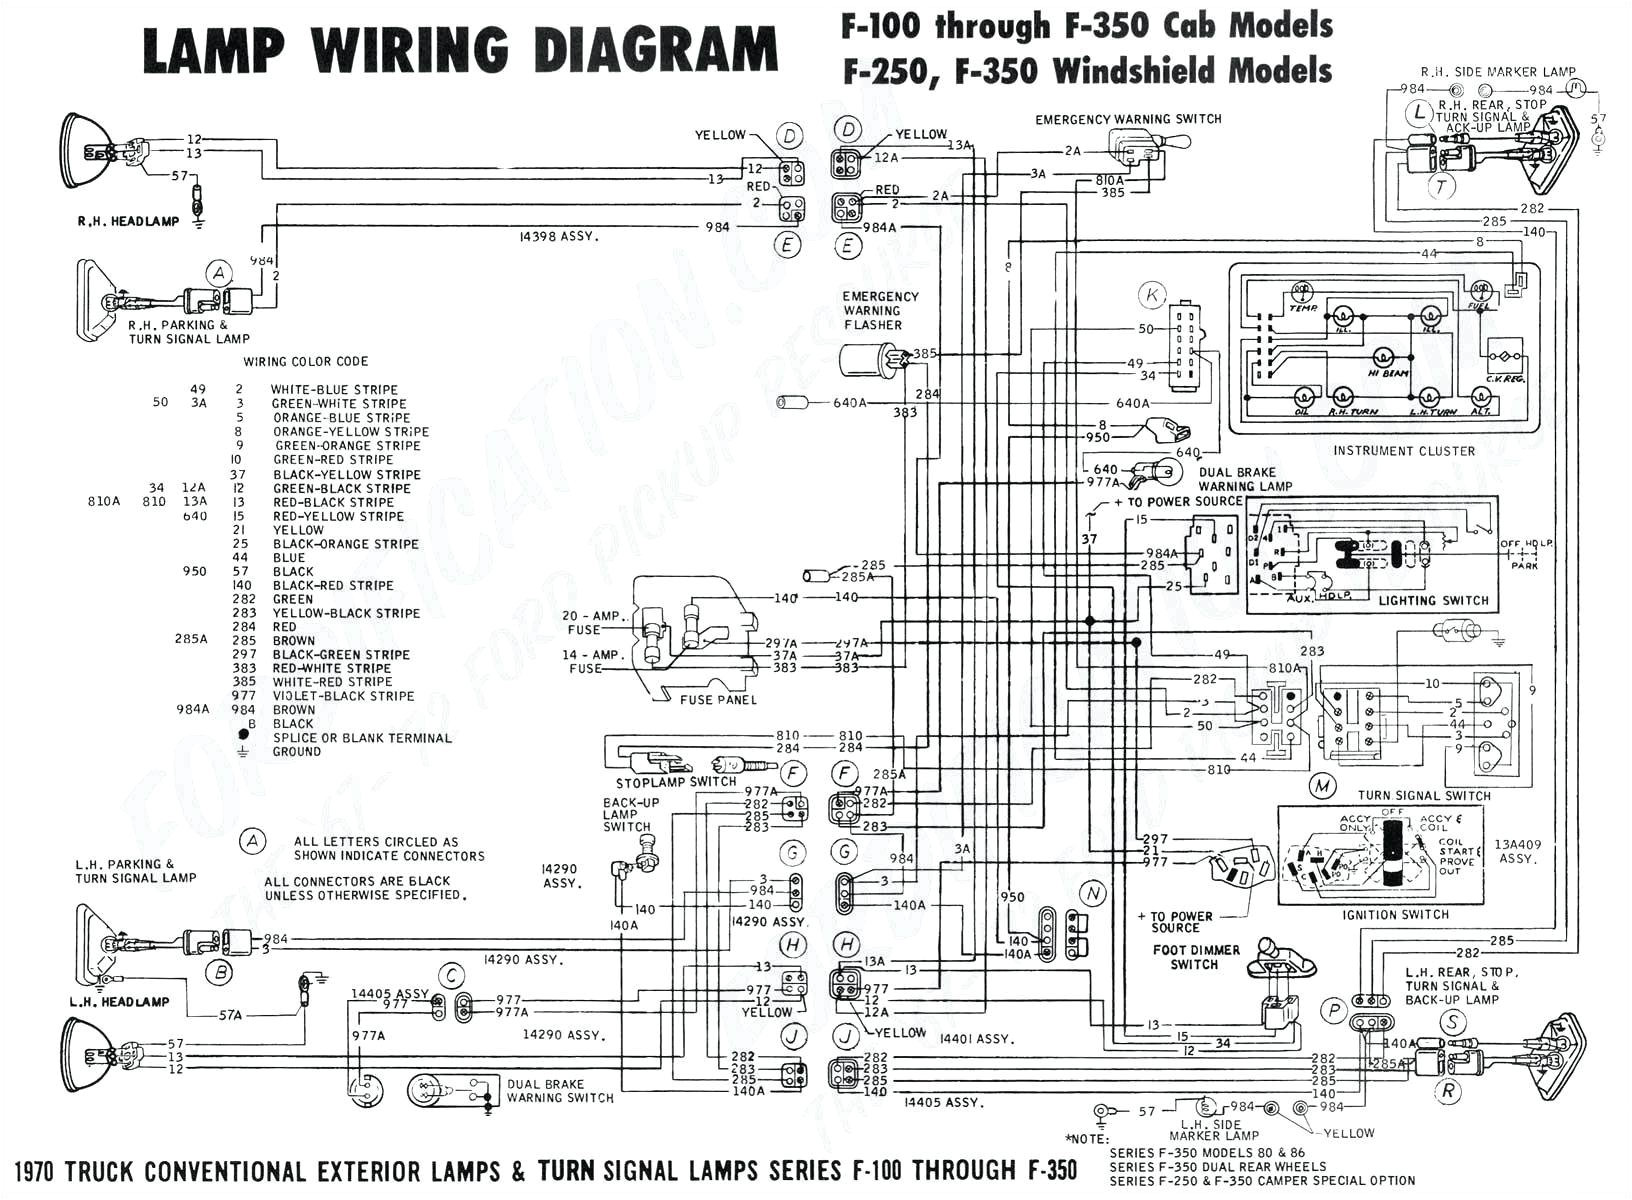 wiring diagram oil pressure 1992 lumina wiring diagram datasourcez34 lumina wiring diagram wiring diagram wiring diagram